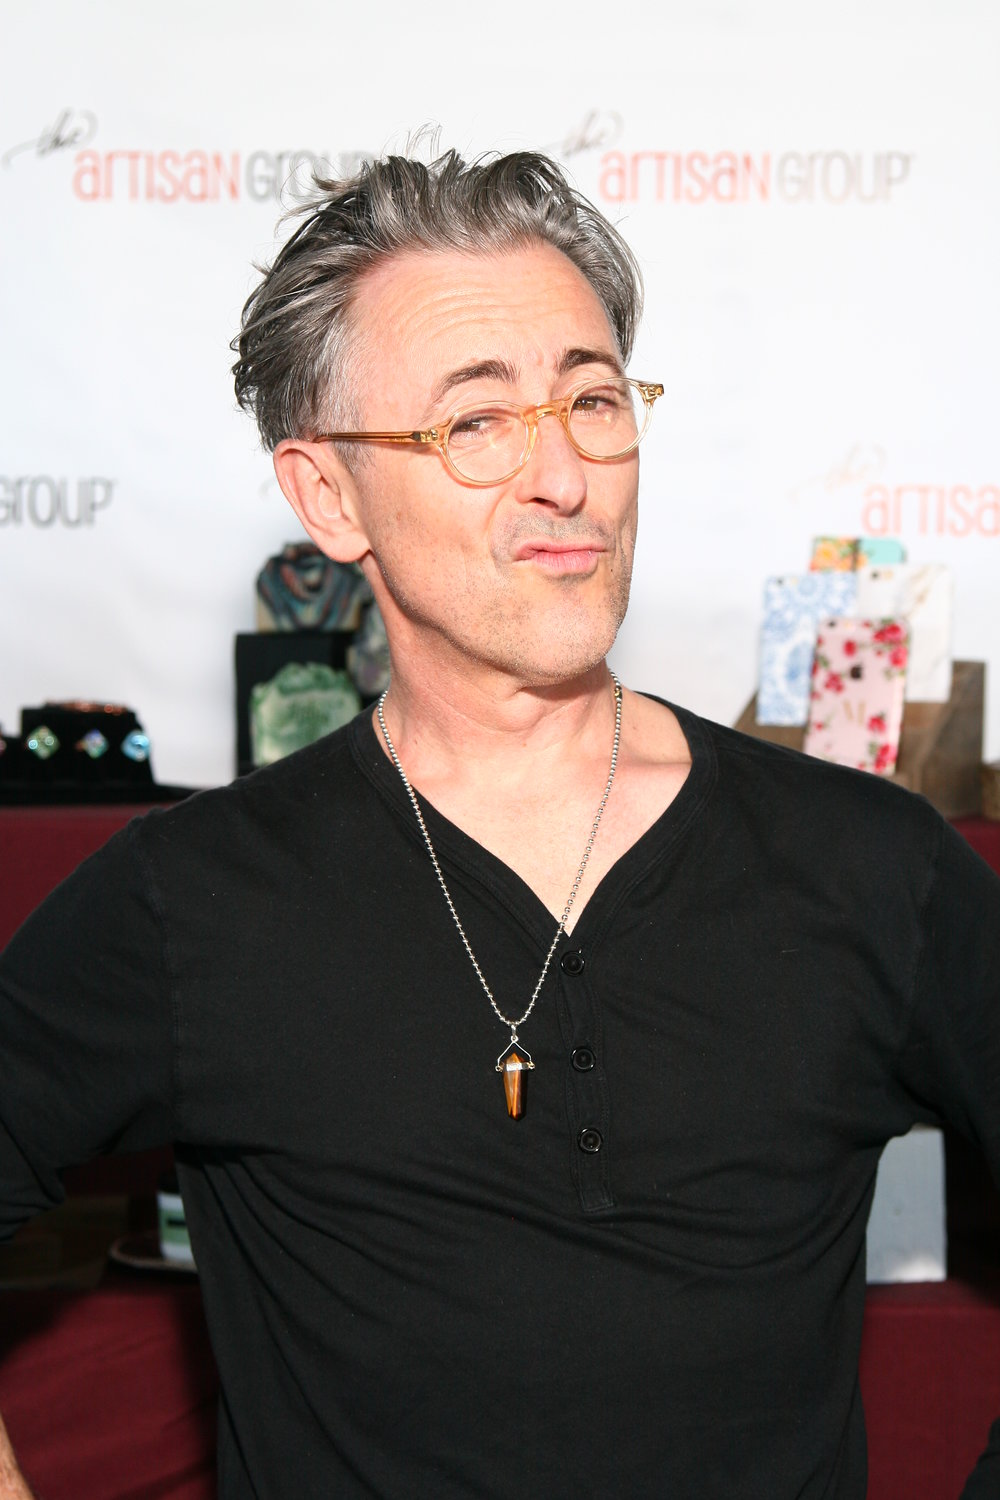 Alan Cumming of The Good Wife